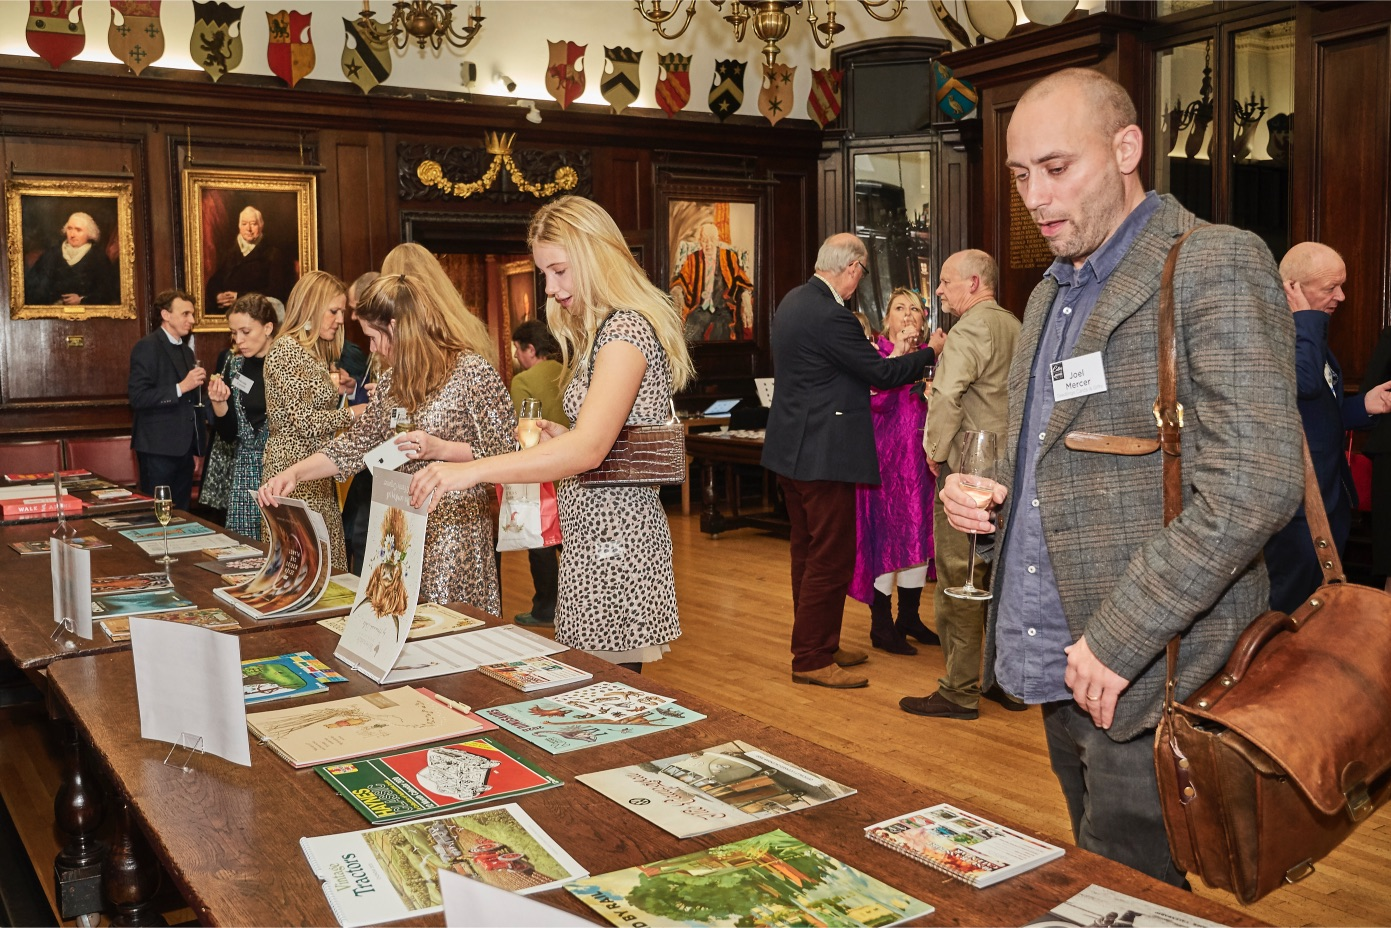 Above: Guests enjoyed looking at the finalists that were on display in the reception rooms.